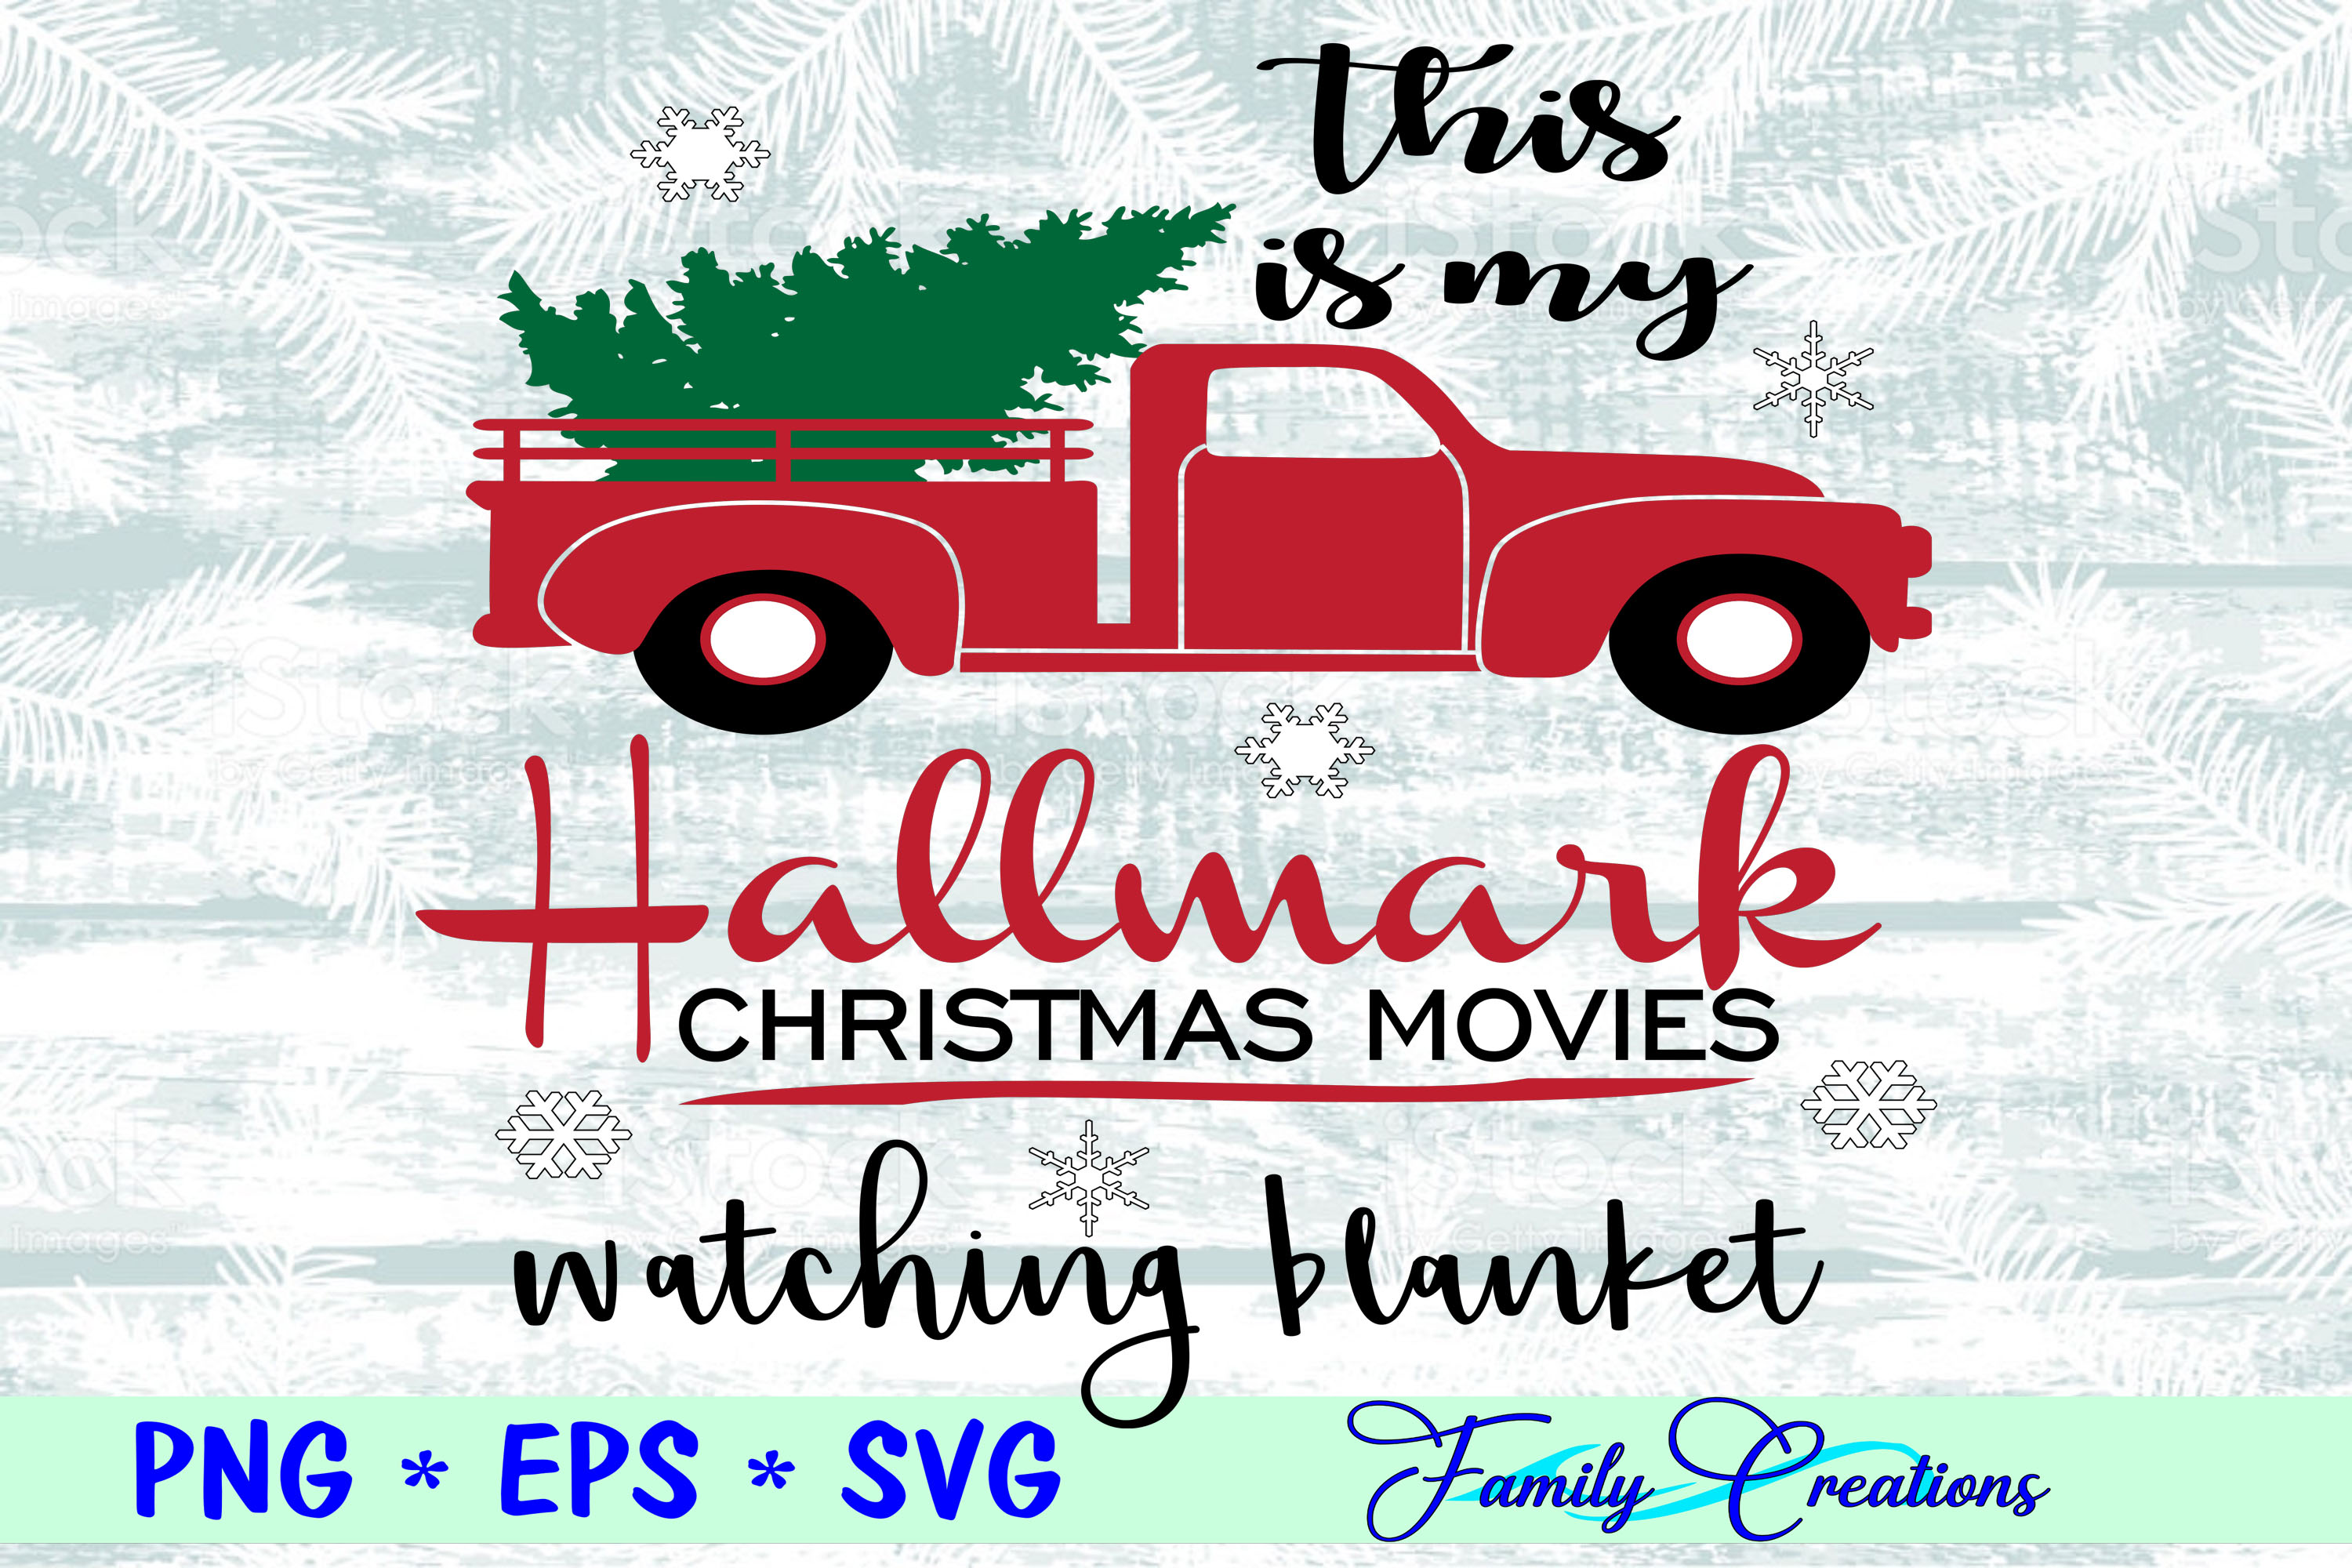 Download Free This Is My Hallmark Christmas Movies Graphic By Family Creations for Cricut Explore, Silhouette and other cutting machines.